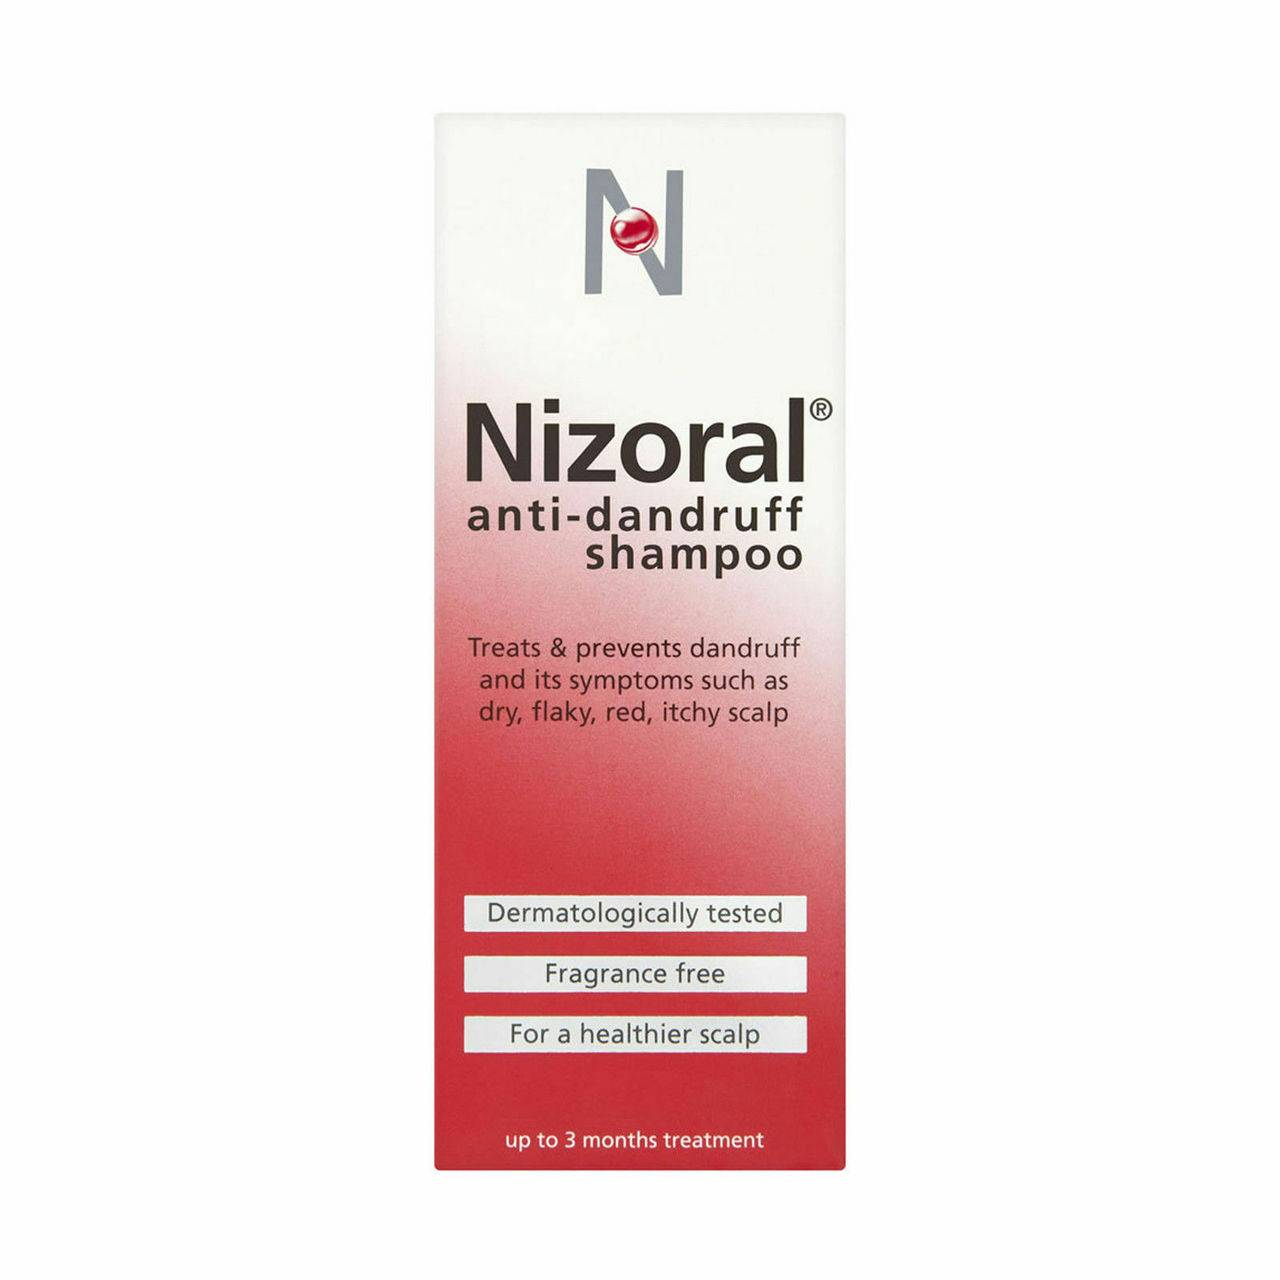 Nizoral Anti-dandruff Shampoo, Treats and Prevents Dandruff, Suitable for Dry Flaky and Itchy Scalp - 100ml